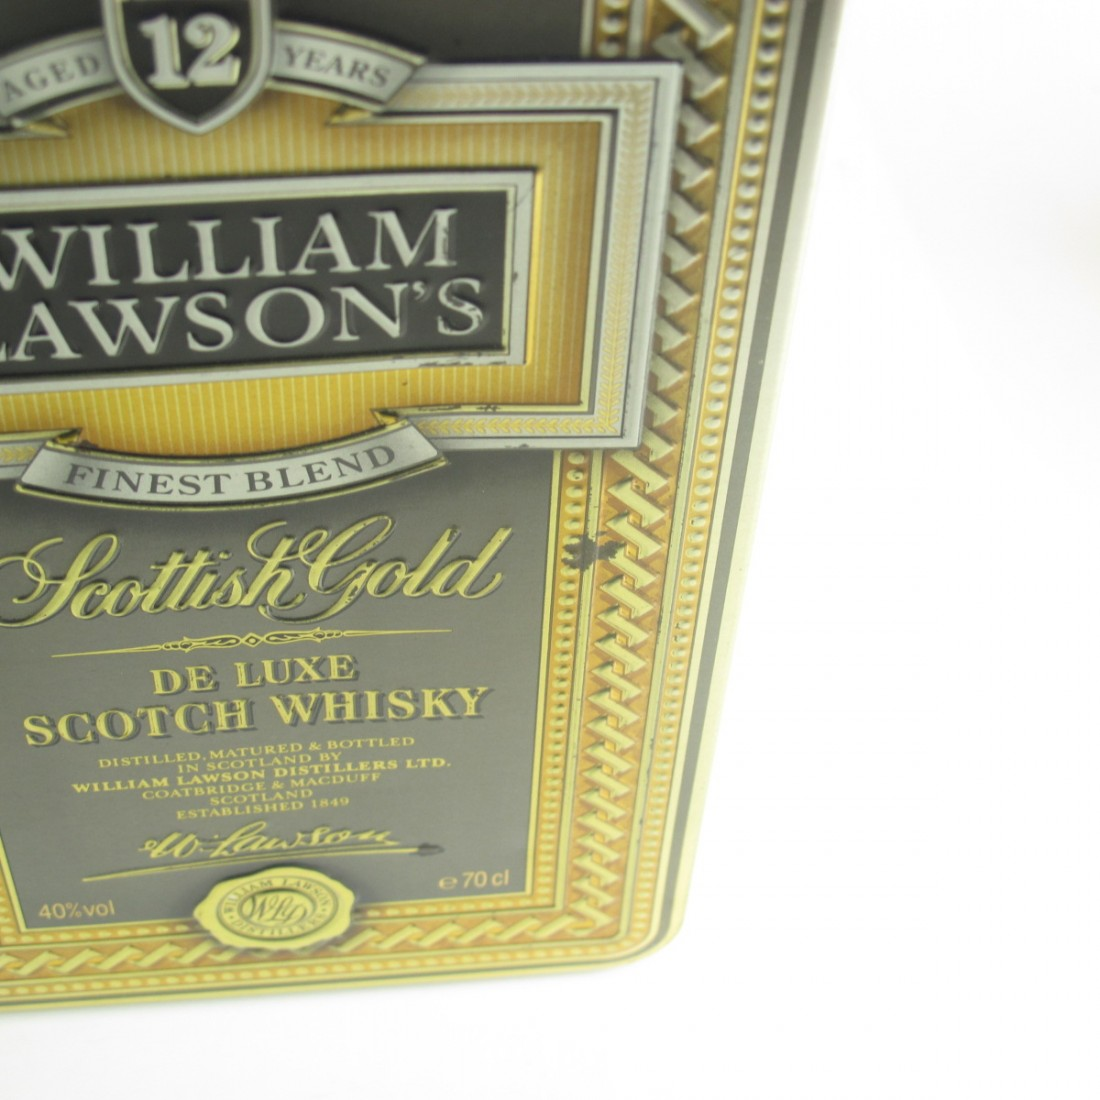 Famous Grouse 70cl & William Lawson's 12 Year Old Scottish Gold 1 Litre